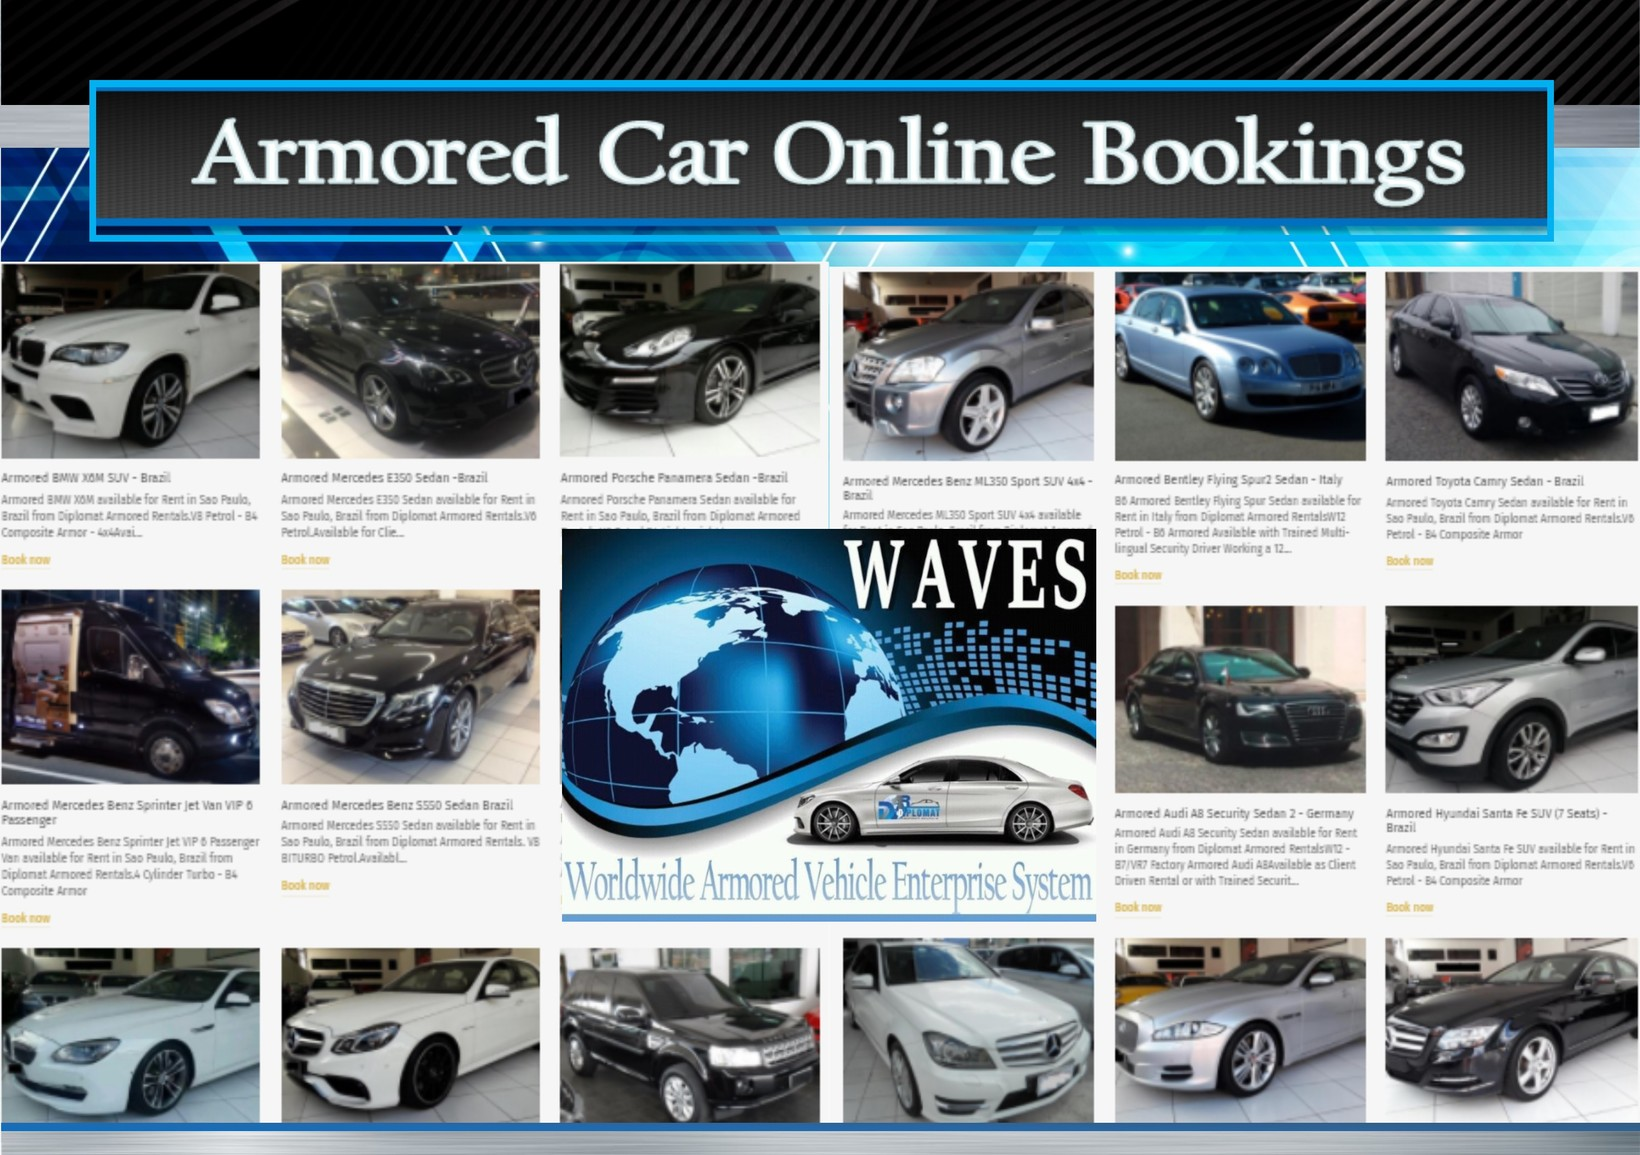 WAVES Worldwide Armored Vehicle Enterprise System - Diplomat